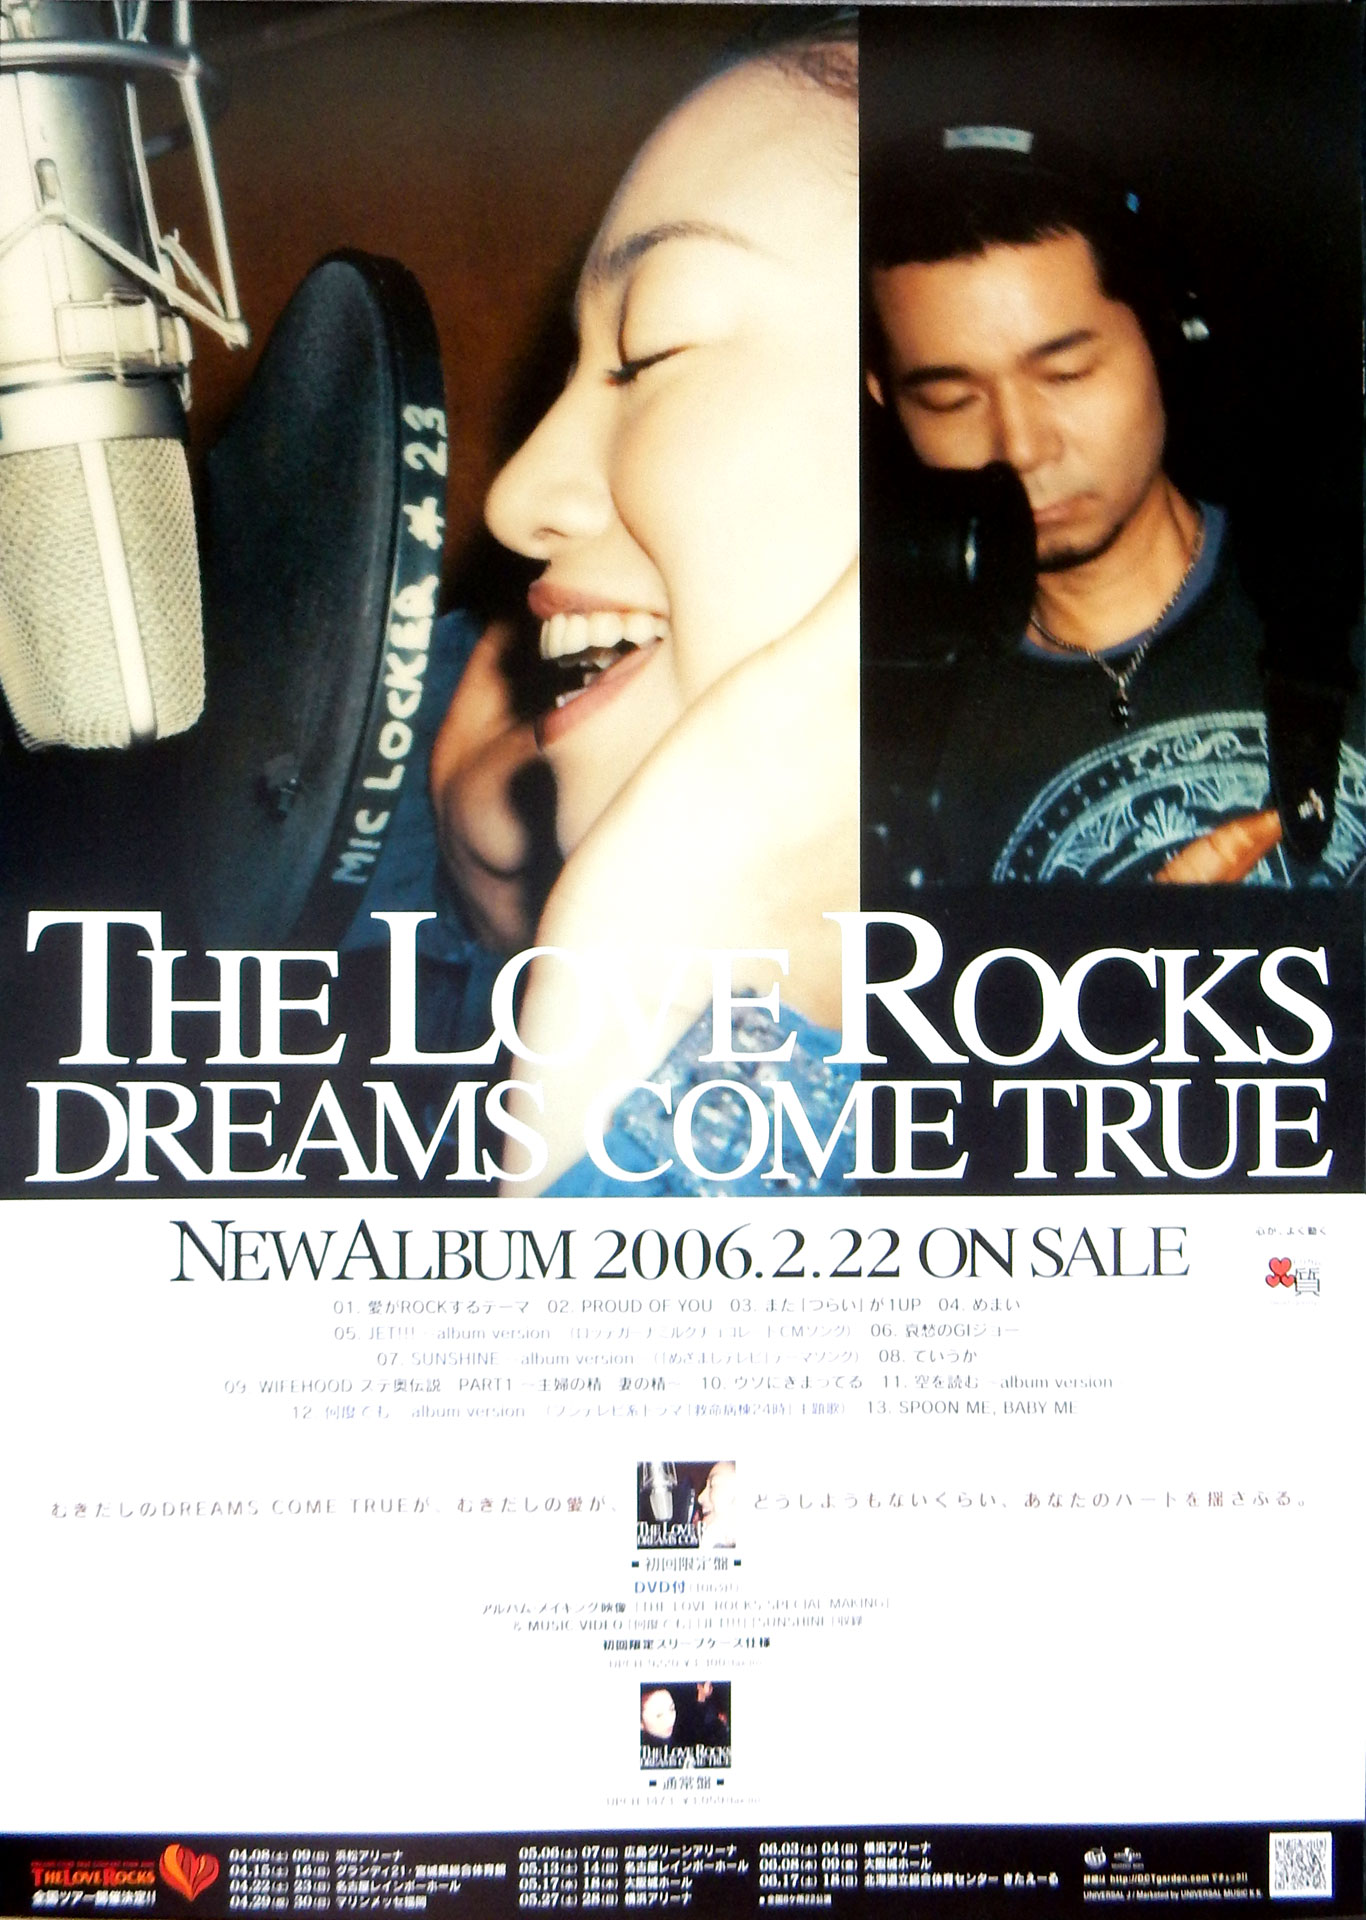 DREAMS COME TRUE 「THE LOVE ROCKS」 のポスター